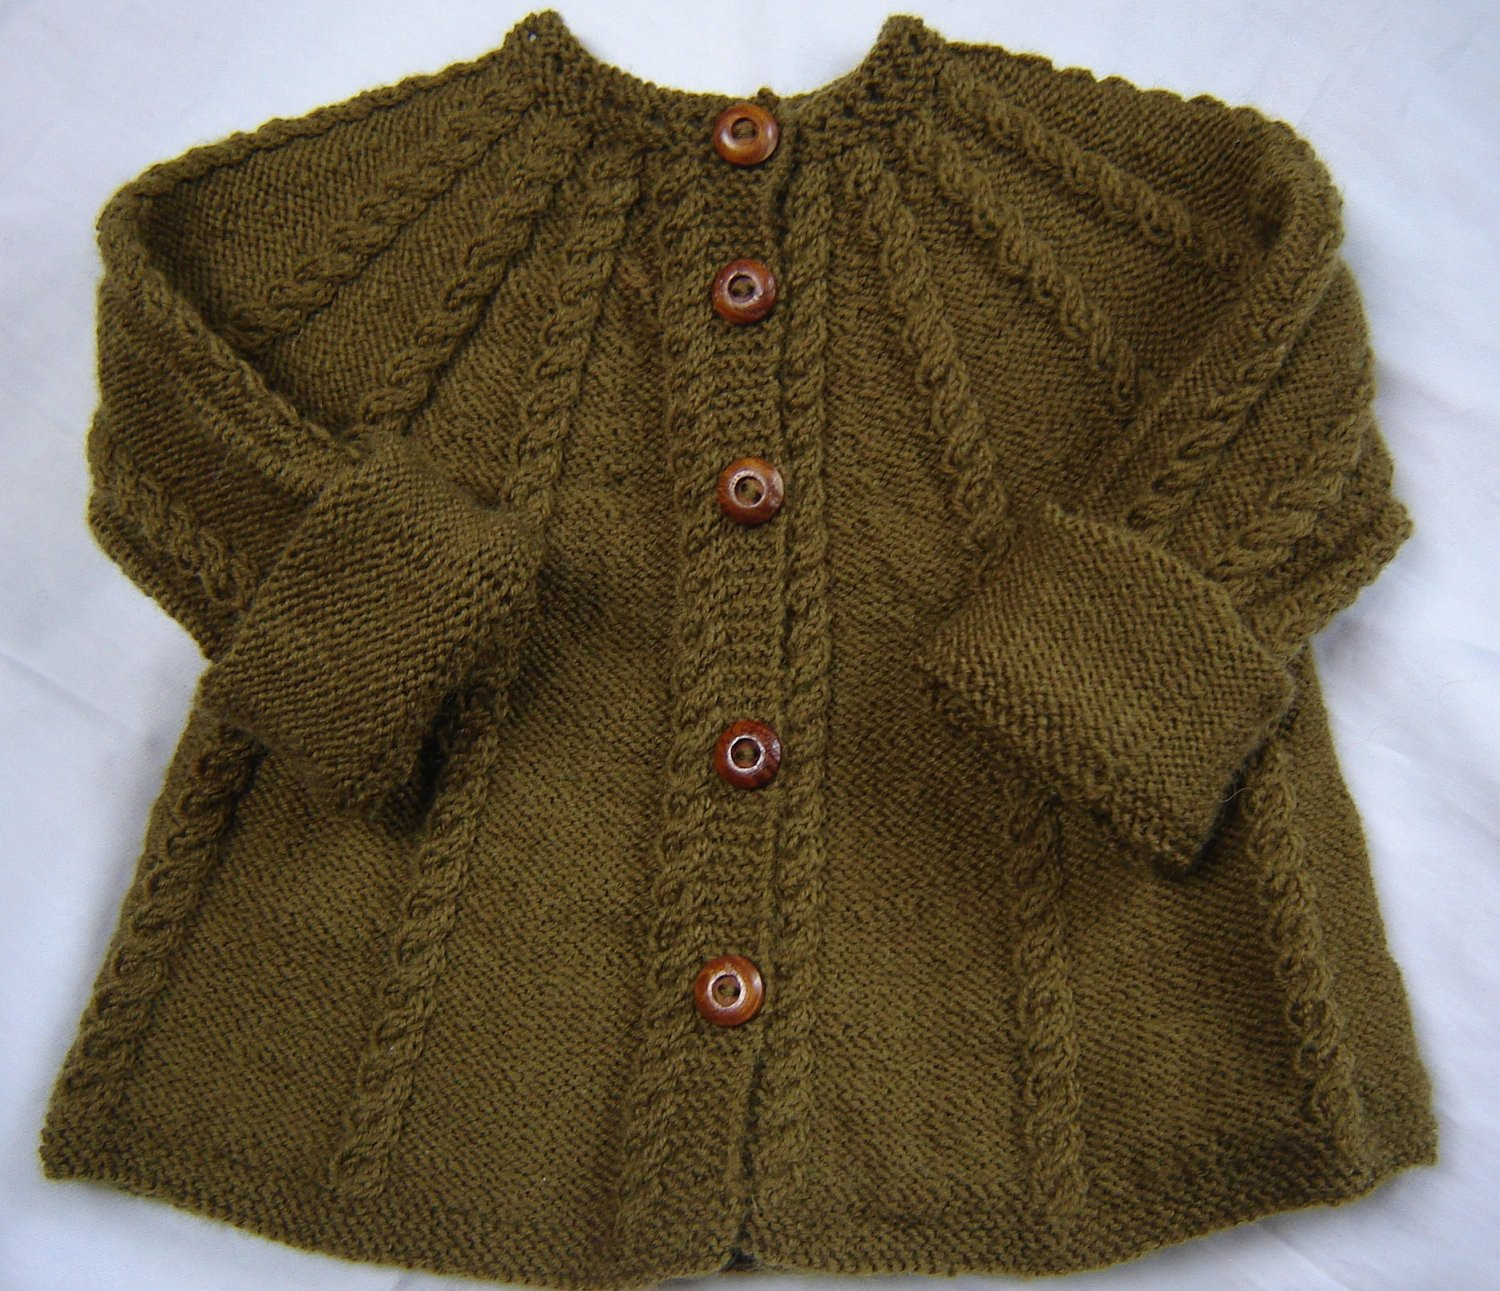 Baby Cardigan Knitting Pattern Elegant Baby Sweater Hand Knit Wool Olive Green Size 3m Of Adorable 48 Pics Baby Cardigan Knitting Pattern